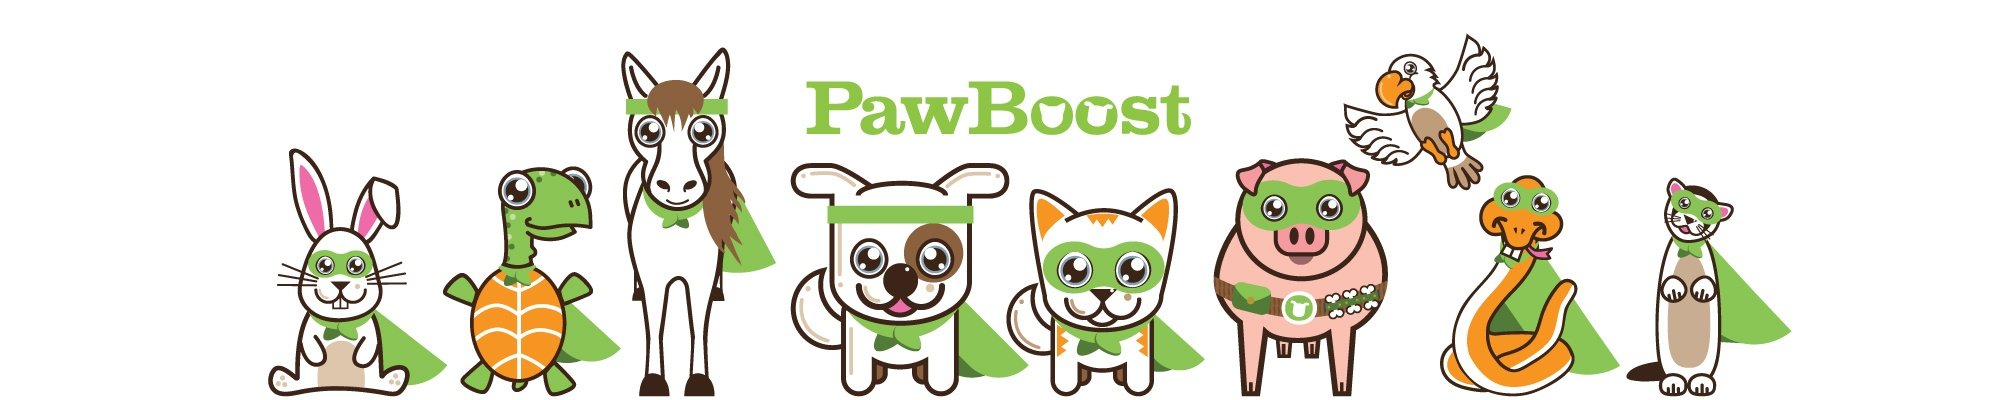 pawboost Cover